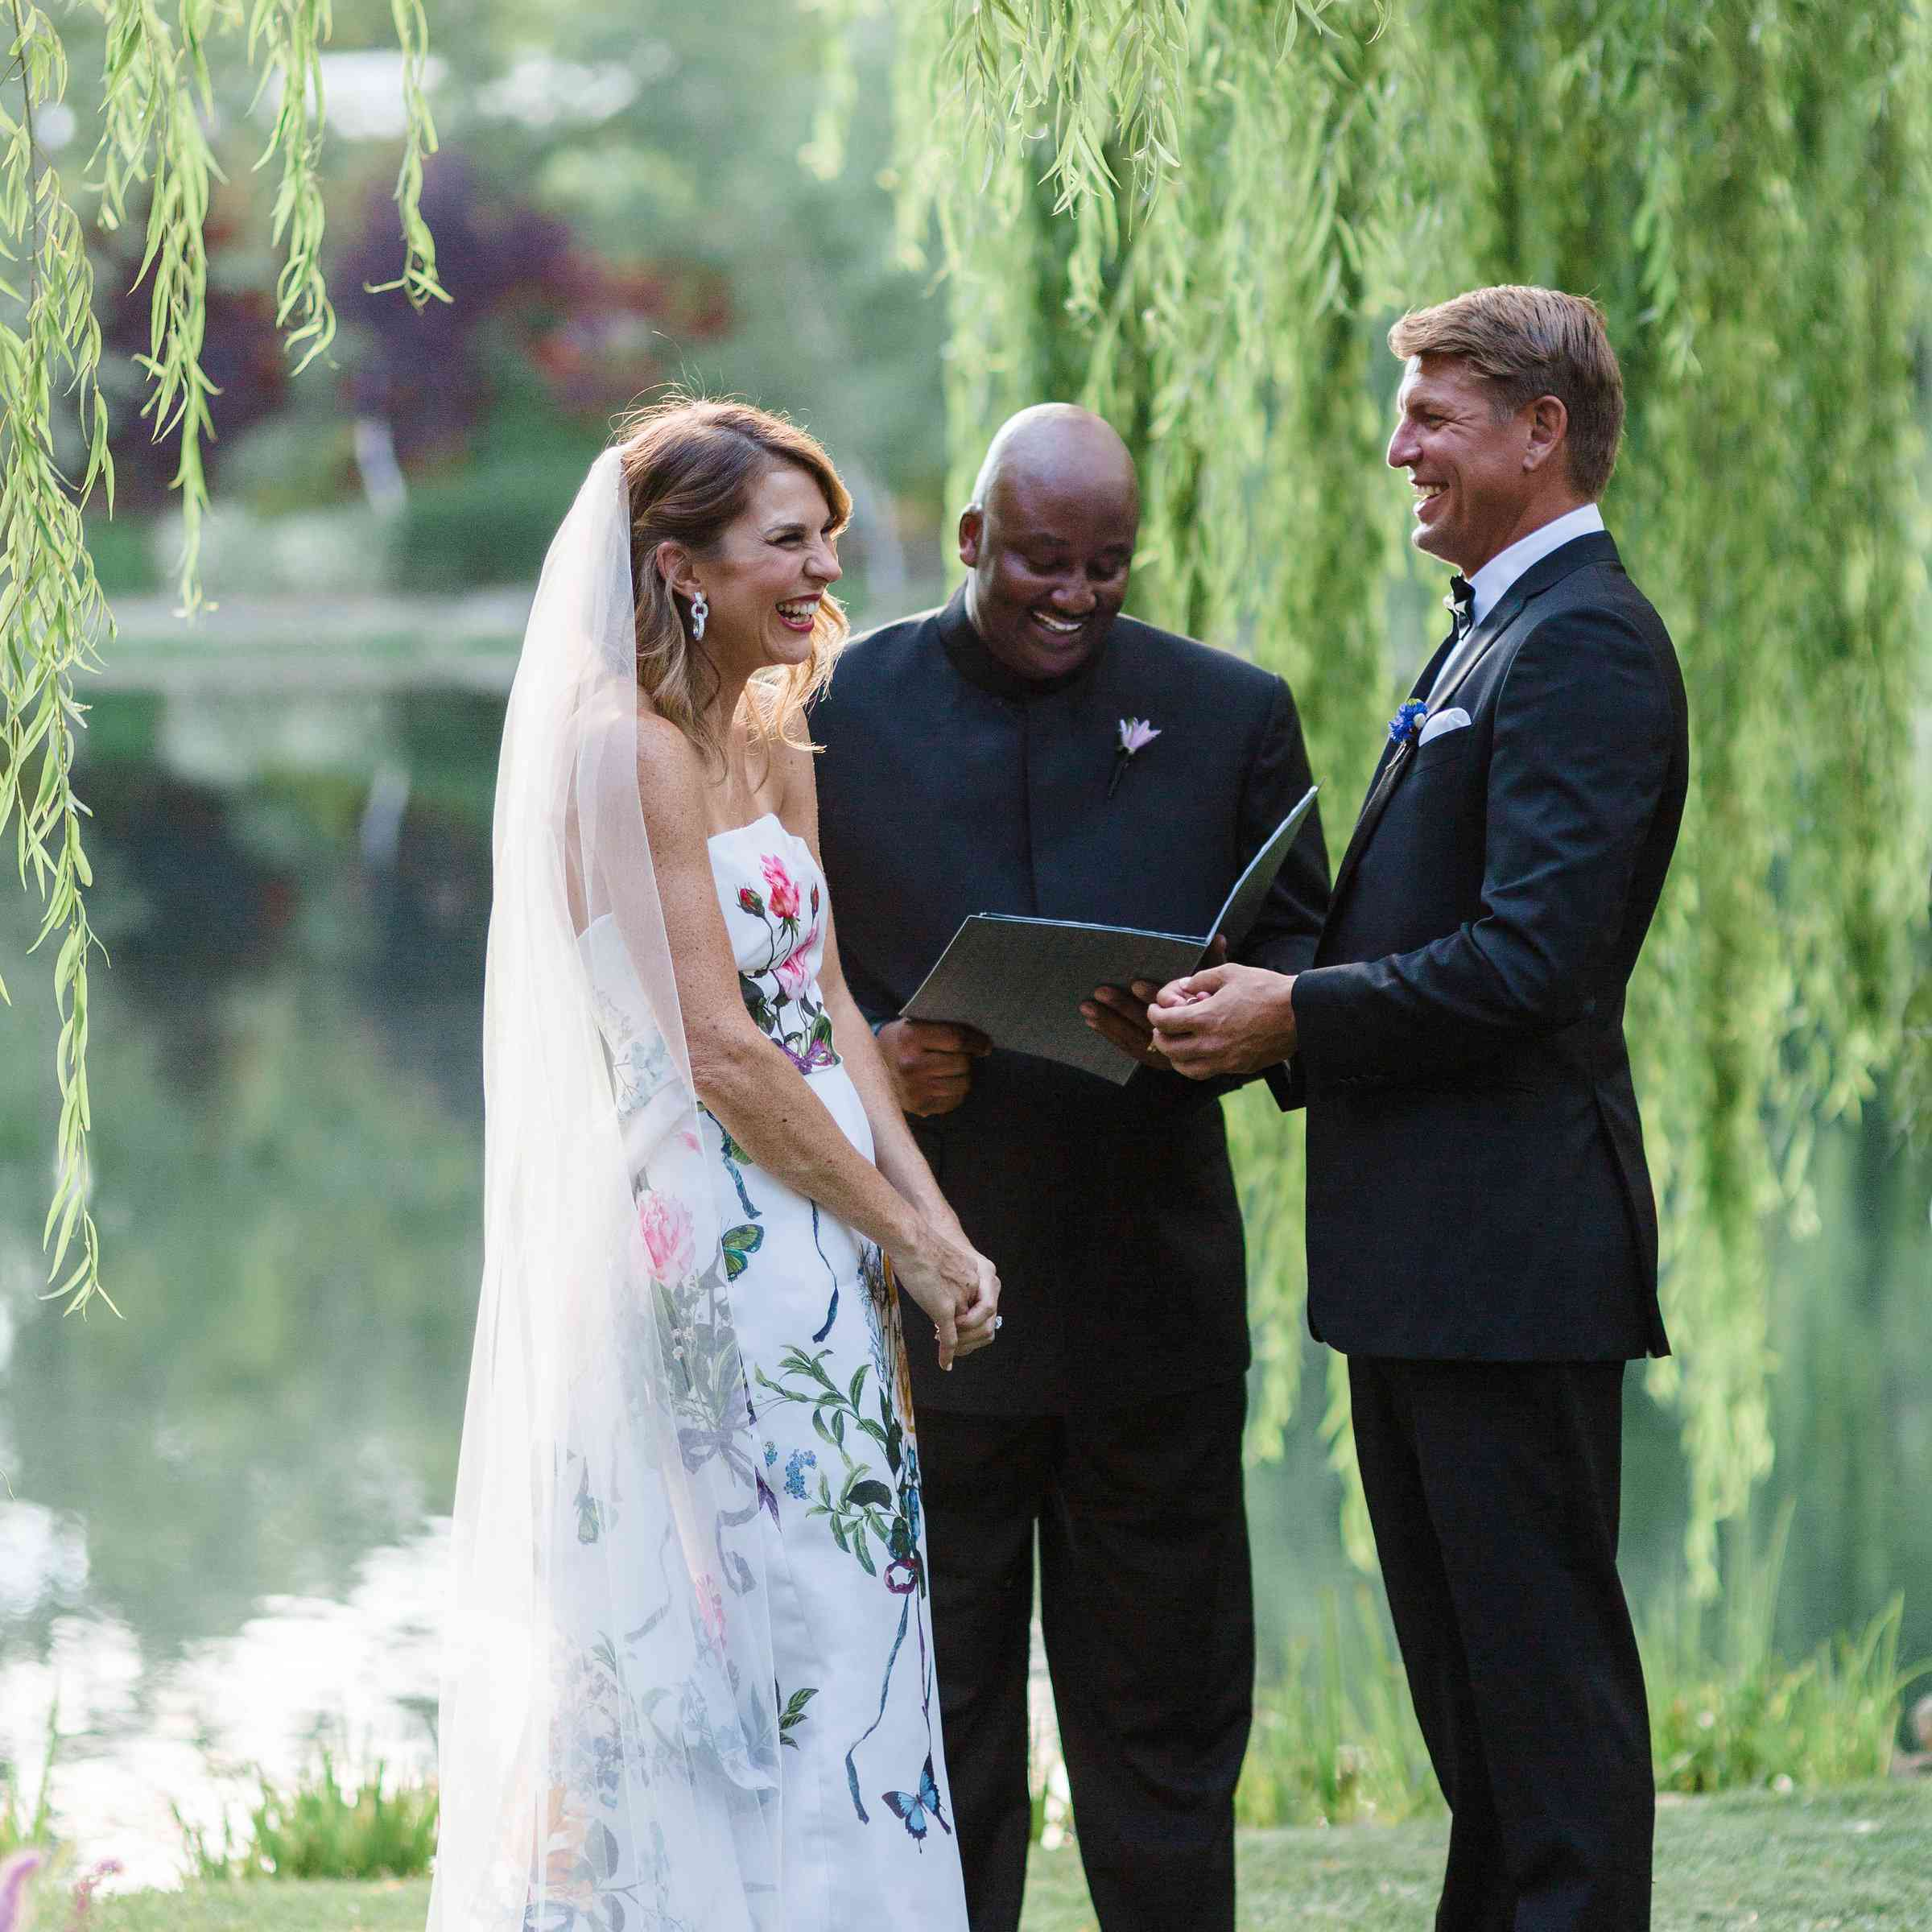 wedding officiant with bride and groom